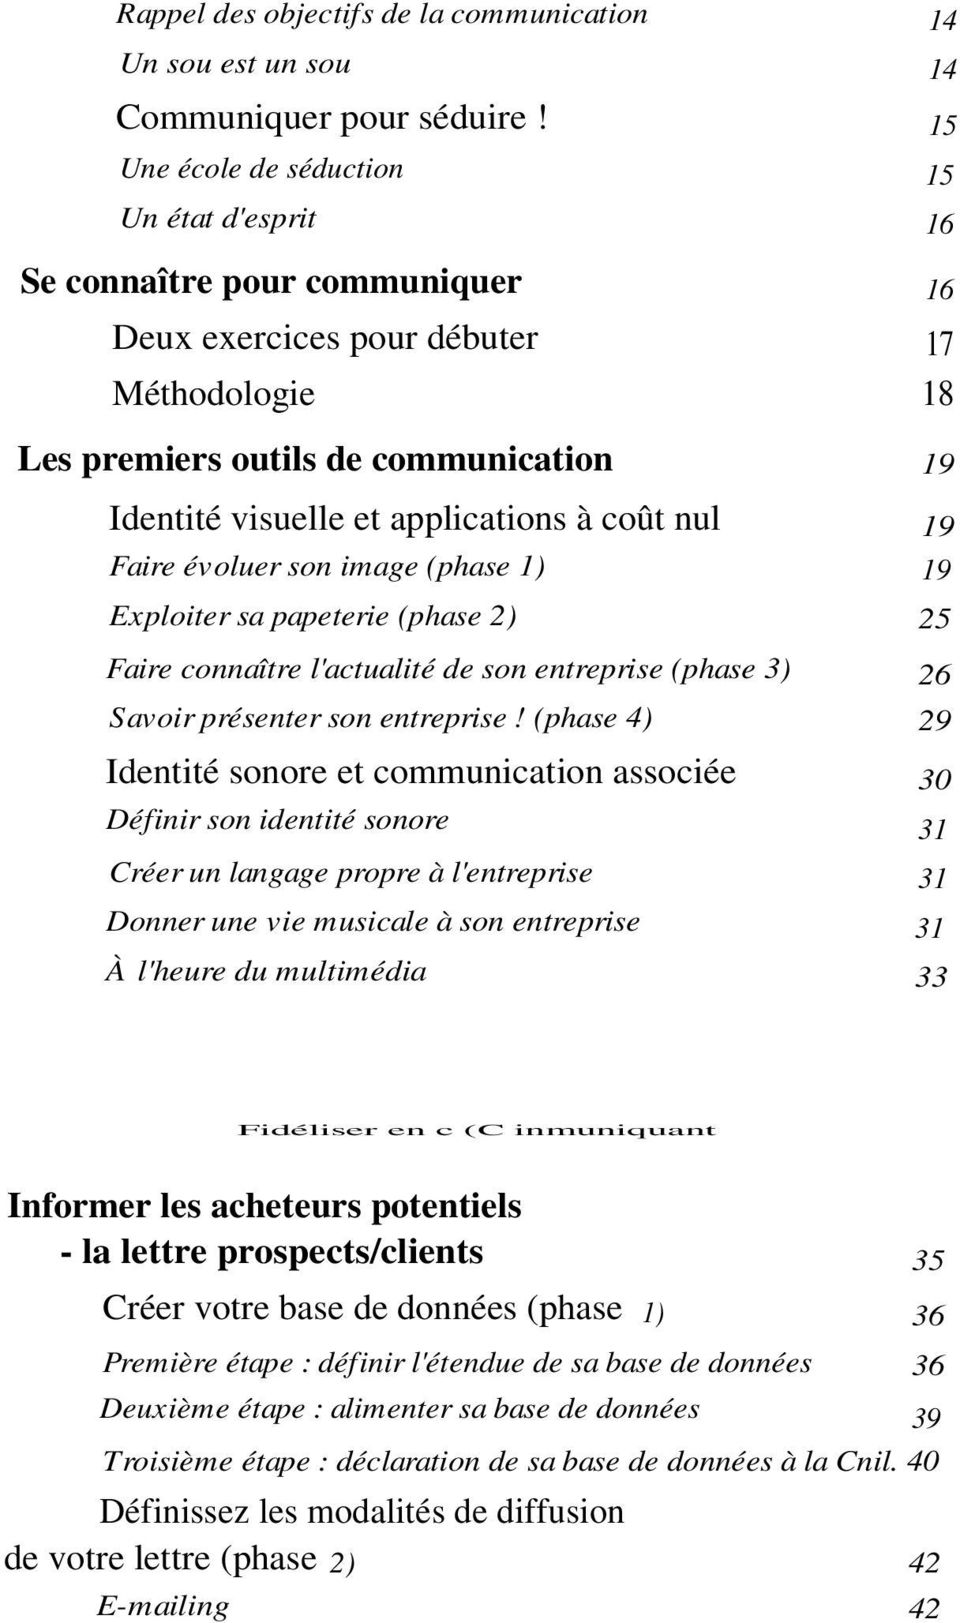 applications à coût nul 19 Faire évoluer son image (phase 1) 19 Exploiter sa papeterie (phase 2) 25 Faire connaître l'actualité de son entreprise (phase 3) 26 Savoir présenter son entreprise!